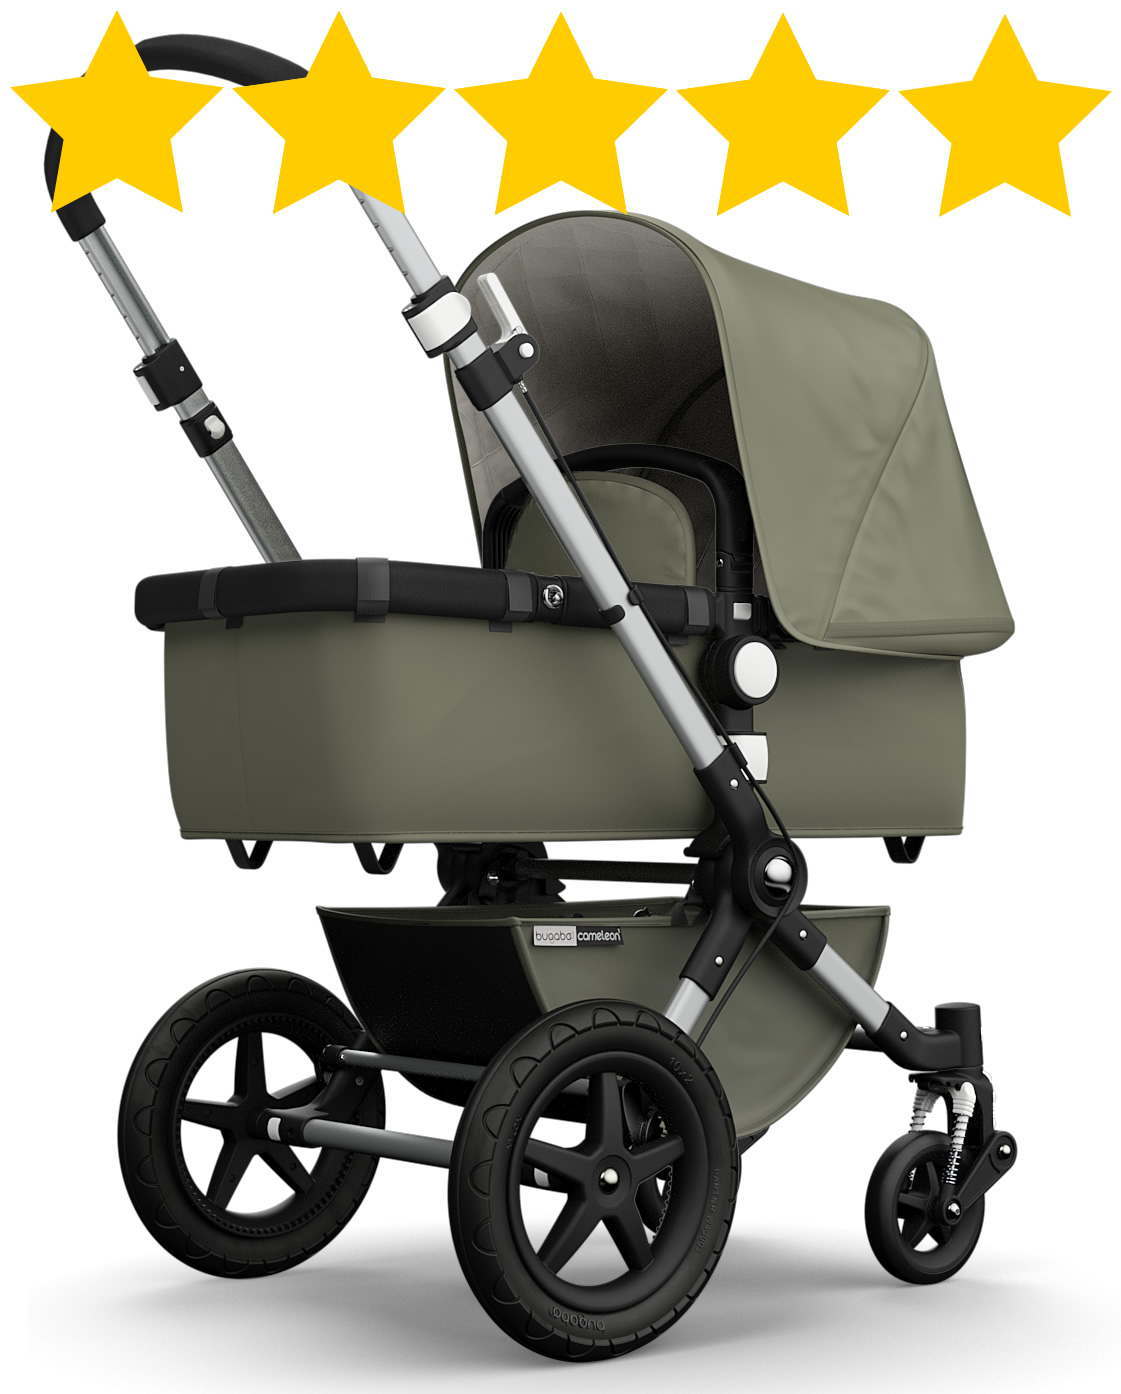 kinderwagen test 2015 die testsieger und vergleich babyplaces. Black Bedroom Furniture Sets. Home Design Ideas